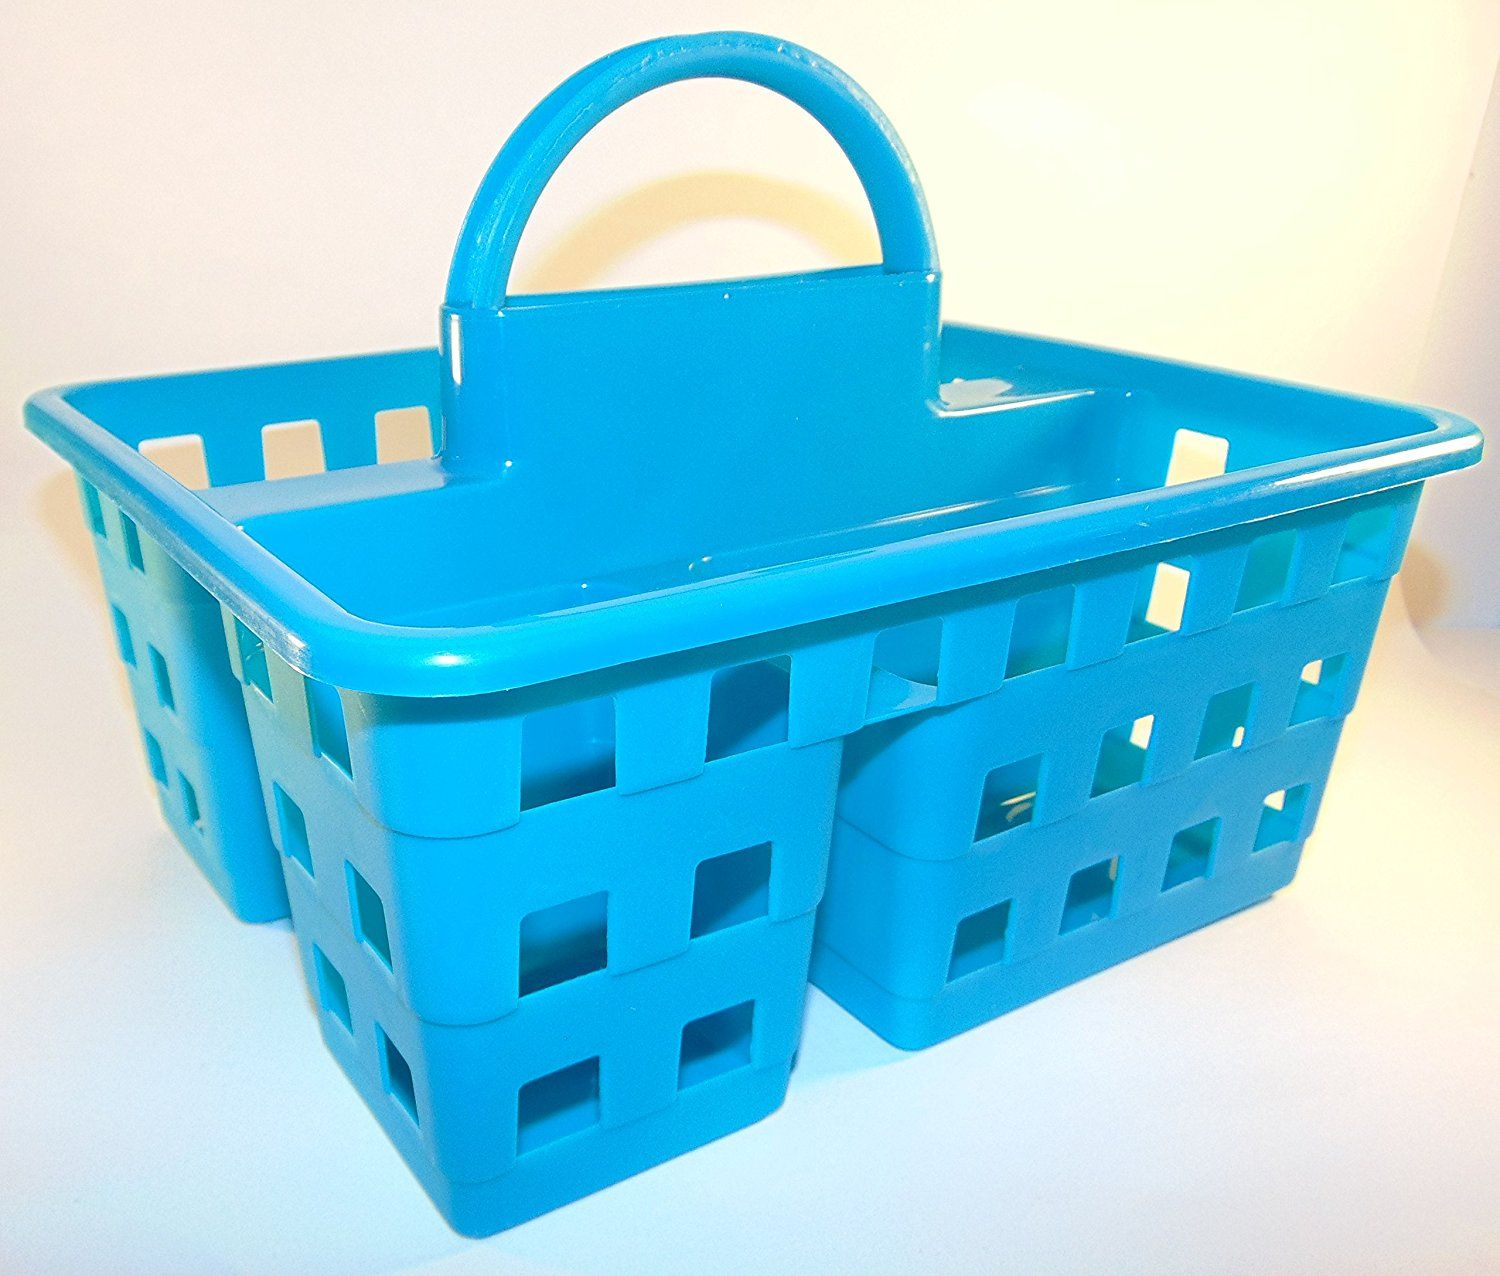 Amazon.com: Small Utility Shower Caddy Tote - Teal Blue: Home ...